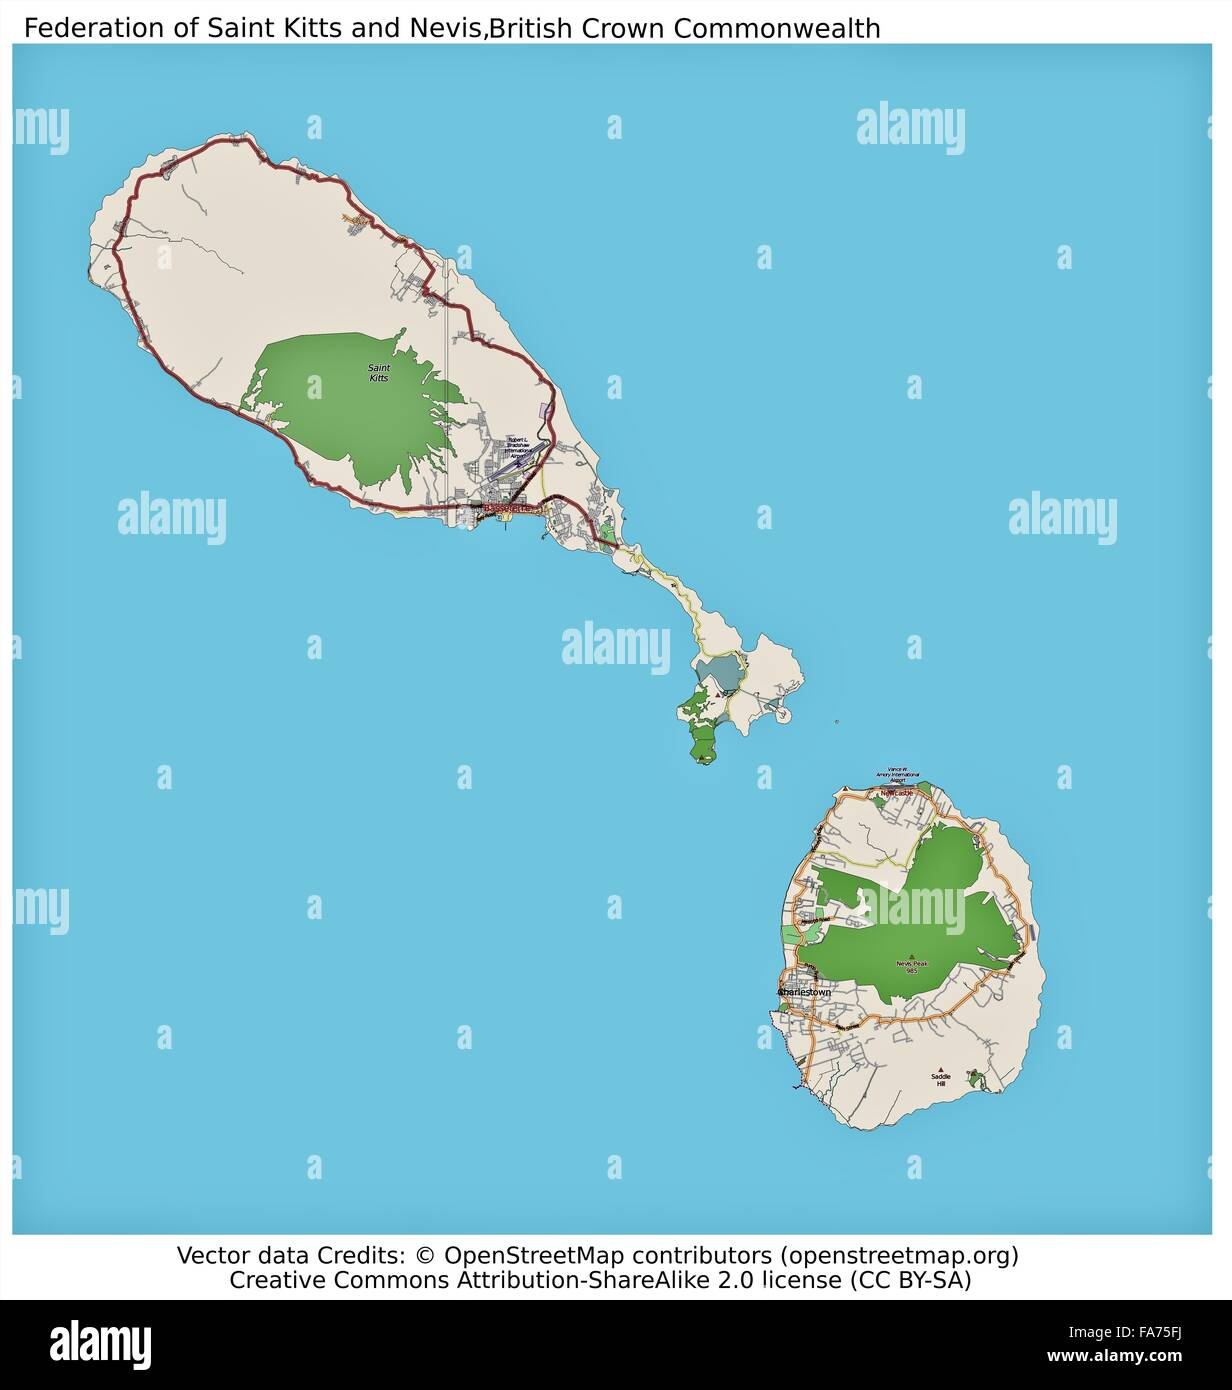 St Kitts and Nevis Caribbean location map Stock Photo: 92356422 - Alamy